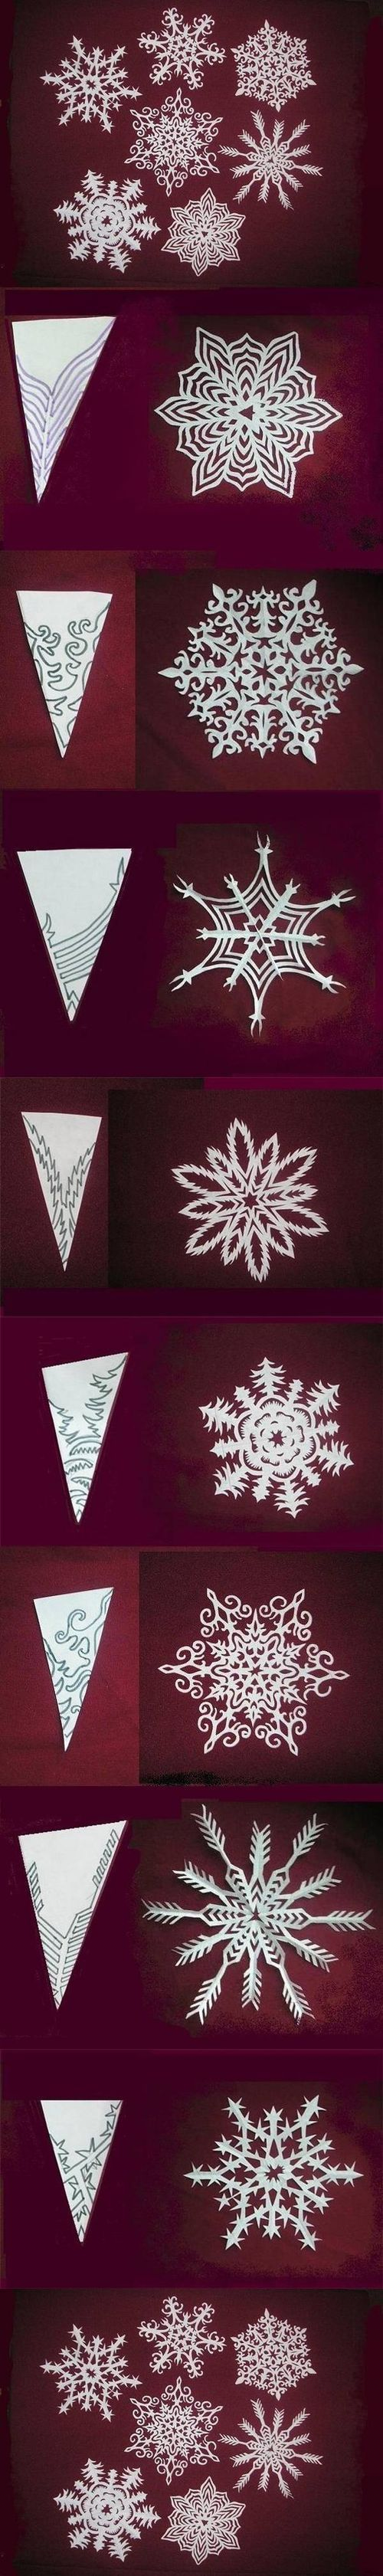 DIY #Snowflakes Paper Pattern. In stead of paper doillies for decorating brown paper gift wrapping or gift bags // Gækkebreve eller snefnug